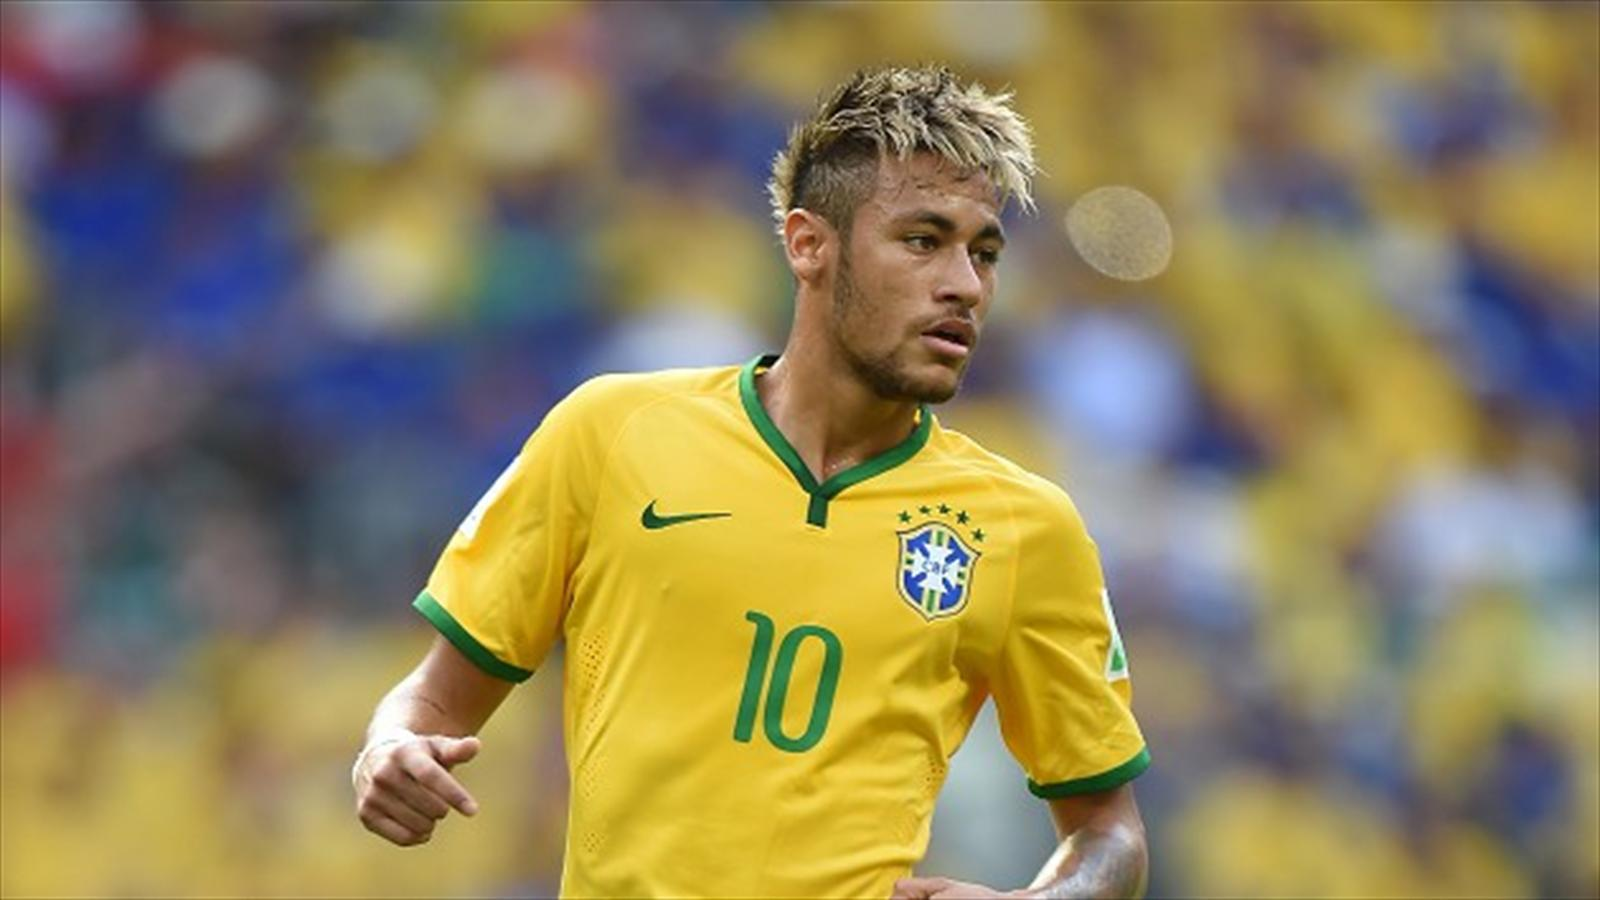 brazil neymar wallpaper 2014 - photo #1